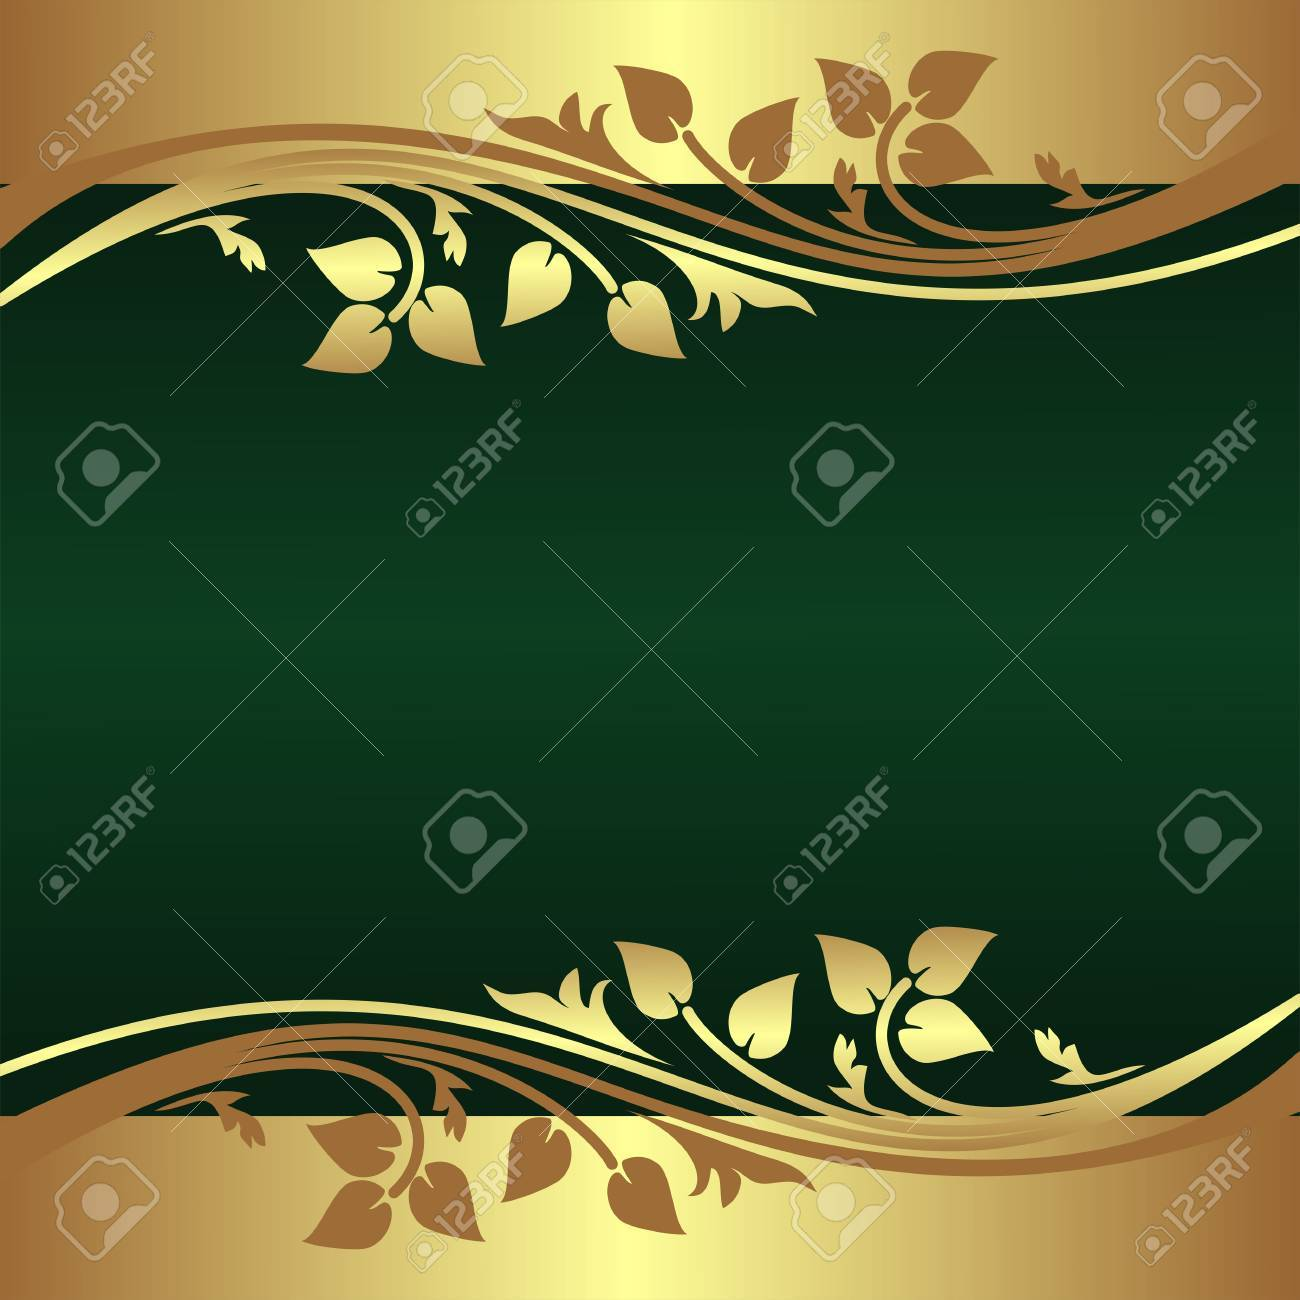 Elegant green Background decorated Border with floral elements - 25119101